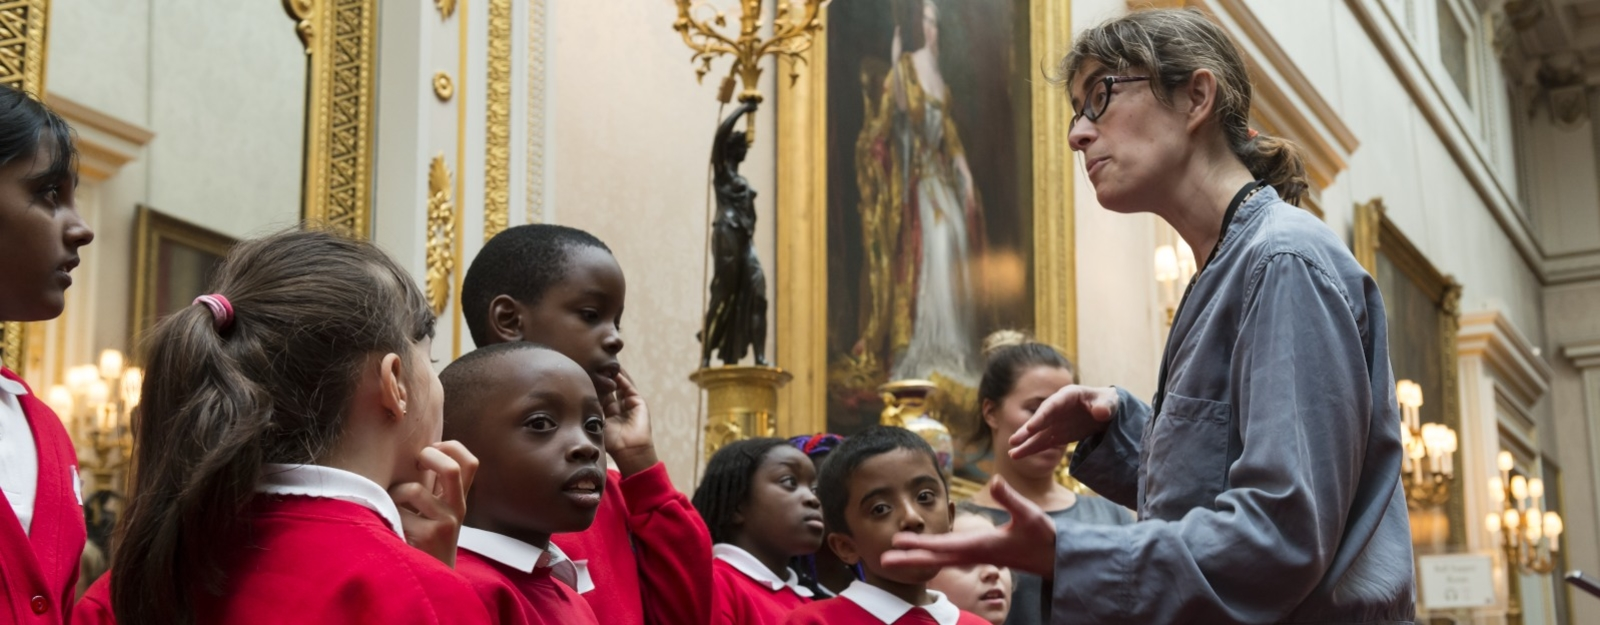 Pupils visit the Picture Gallery, Buckingham Palace